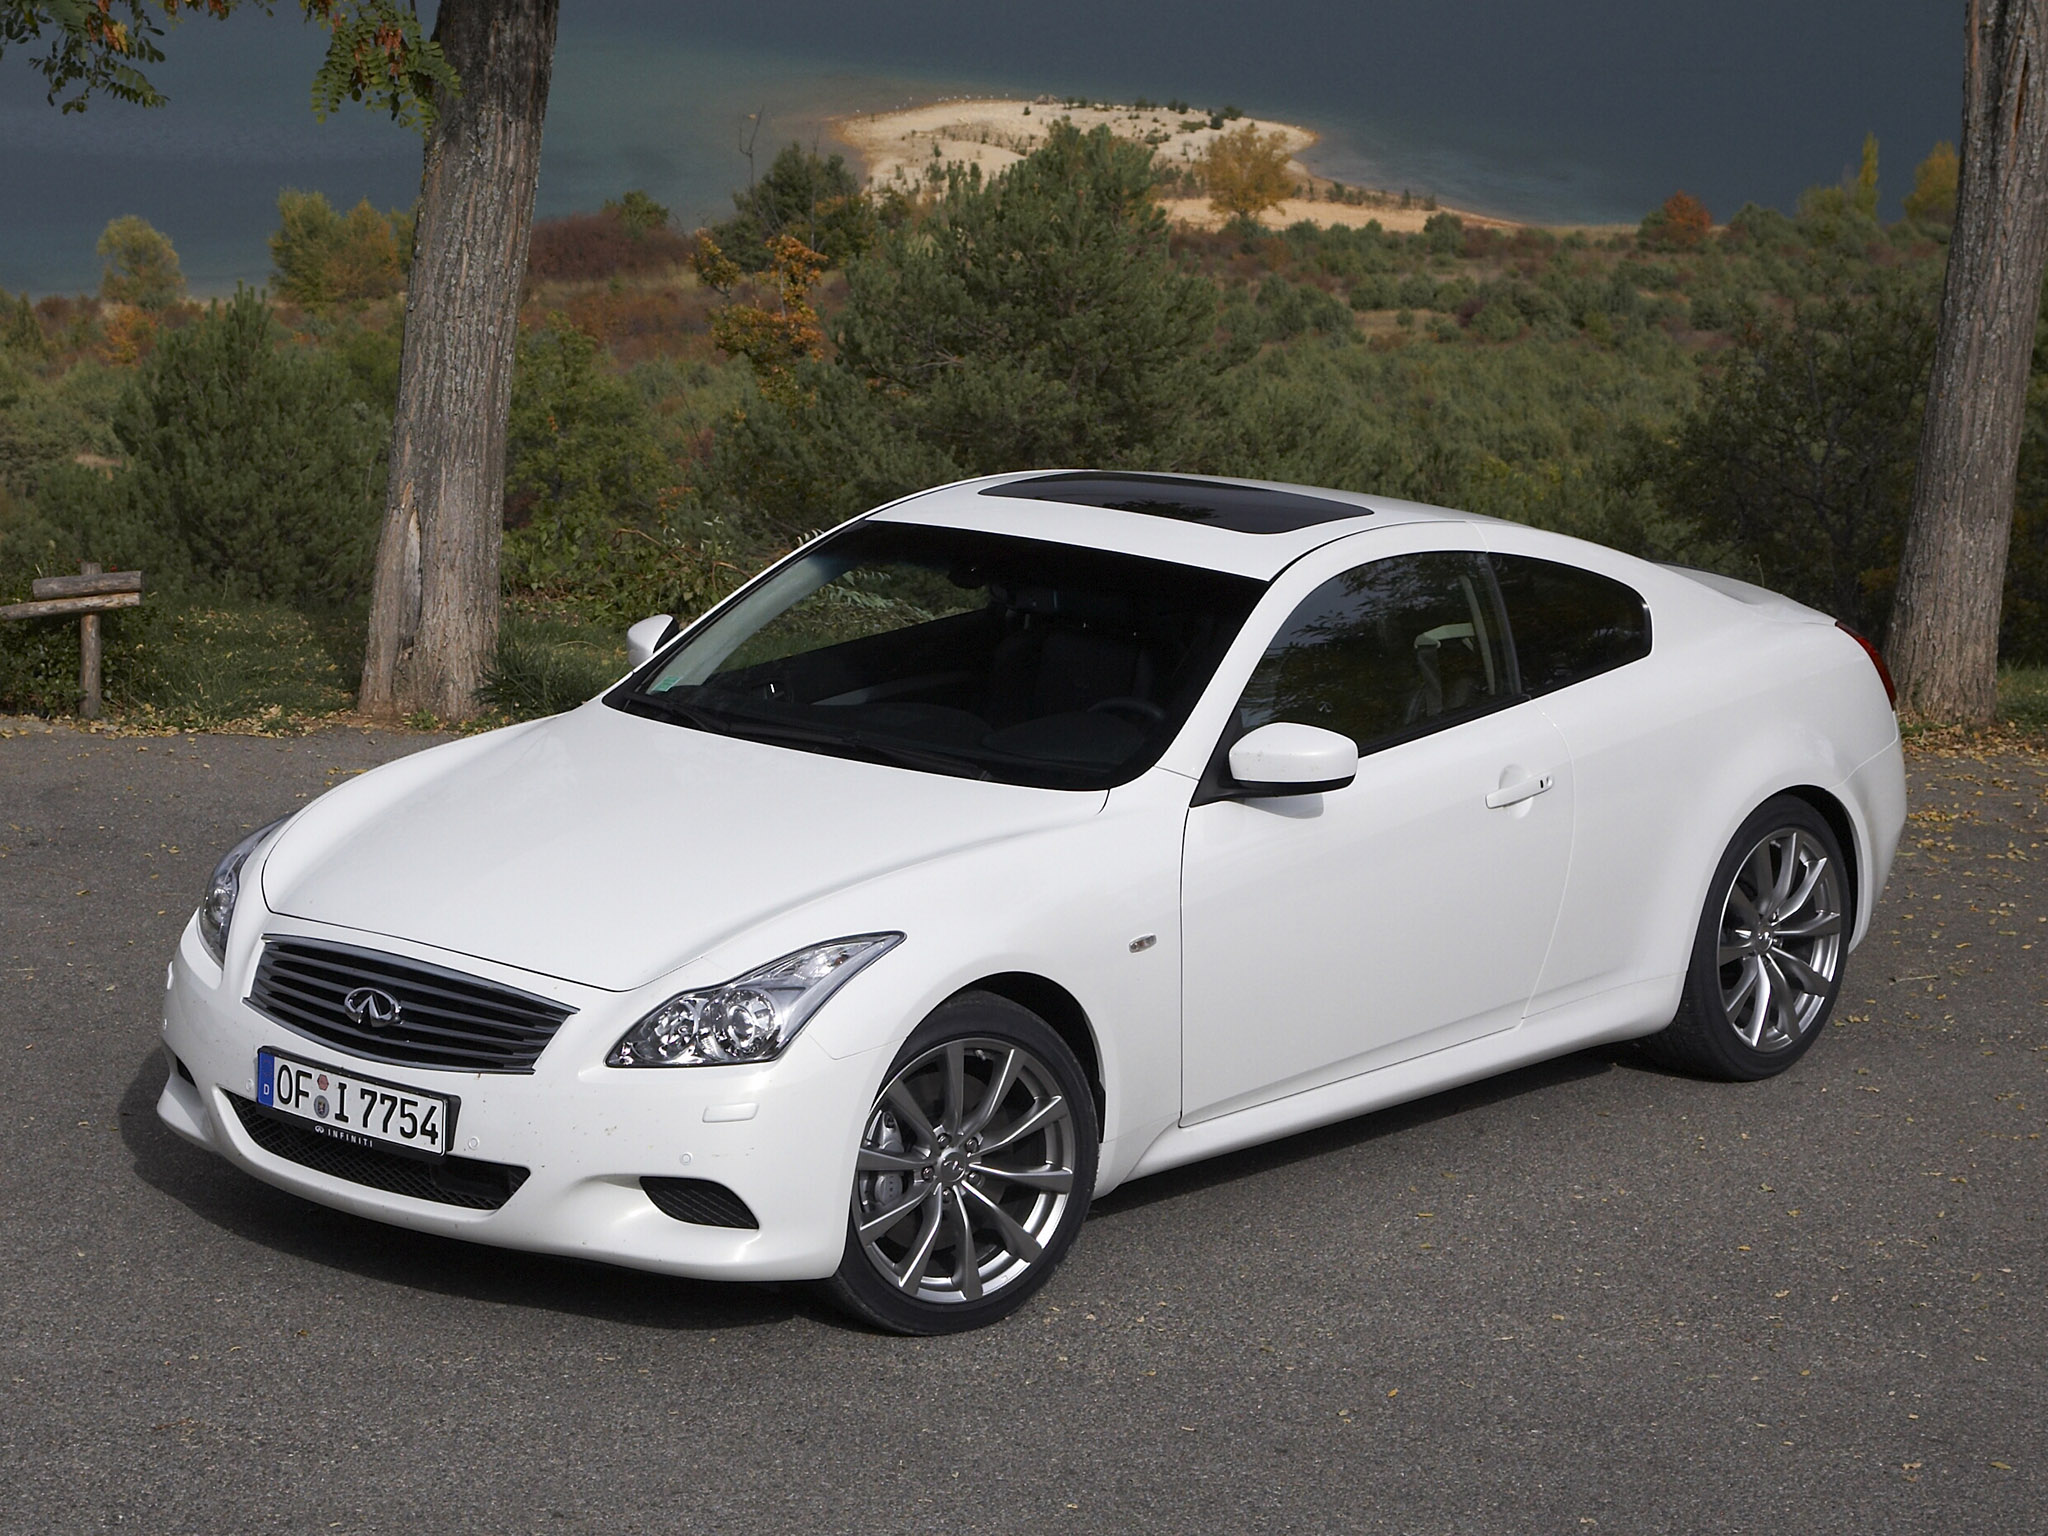 2010 infiniti g37 coupe pictures information and specs. Black Bedroom Furniture Sets. Home Design Ideas